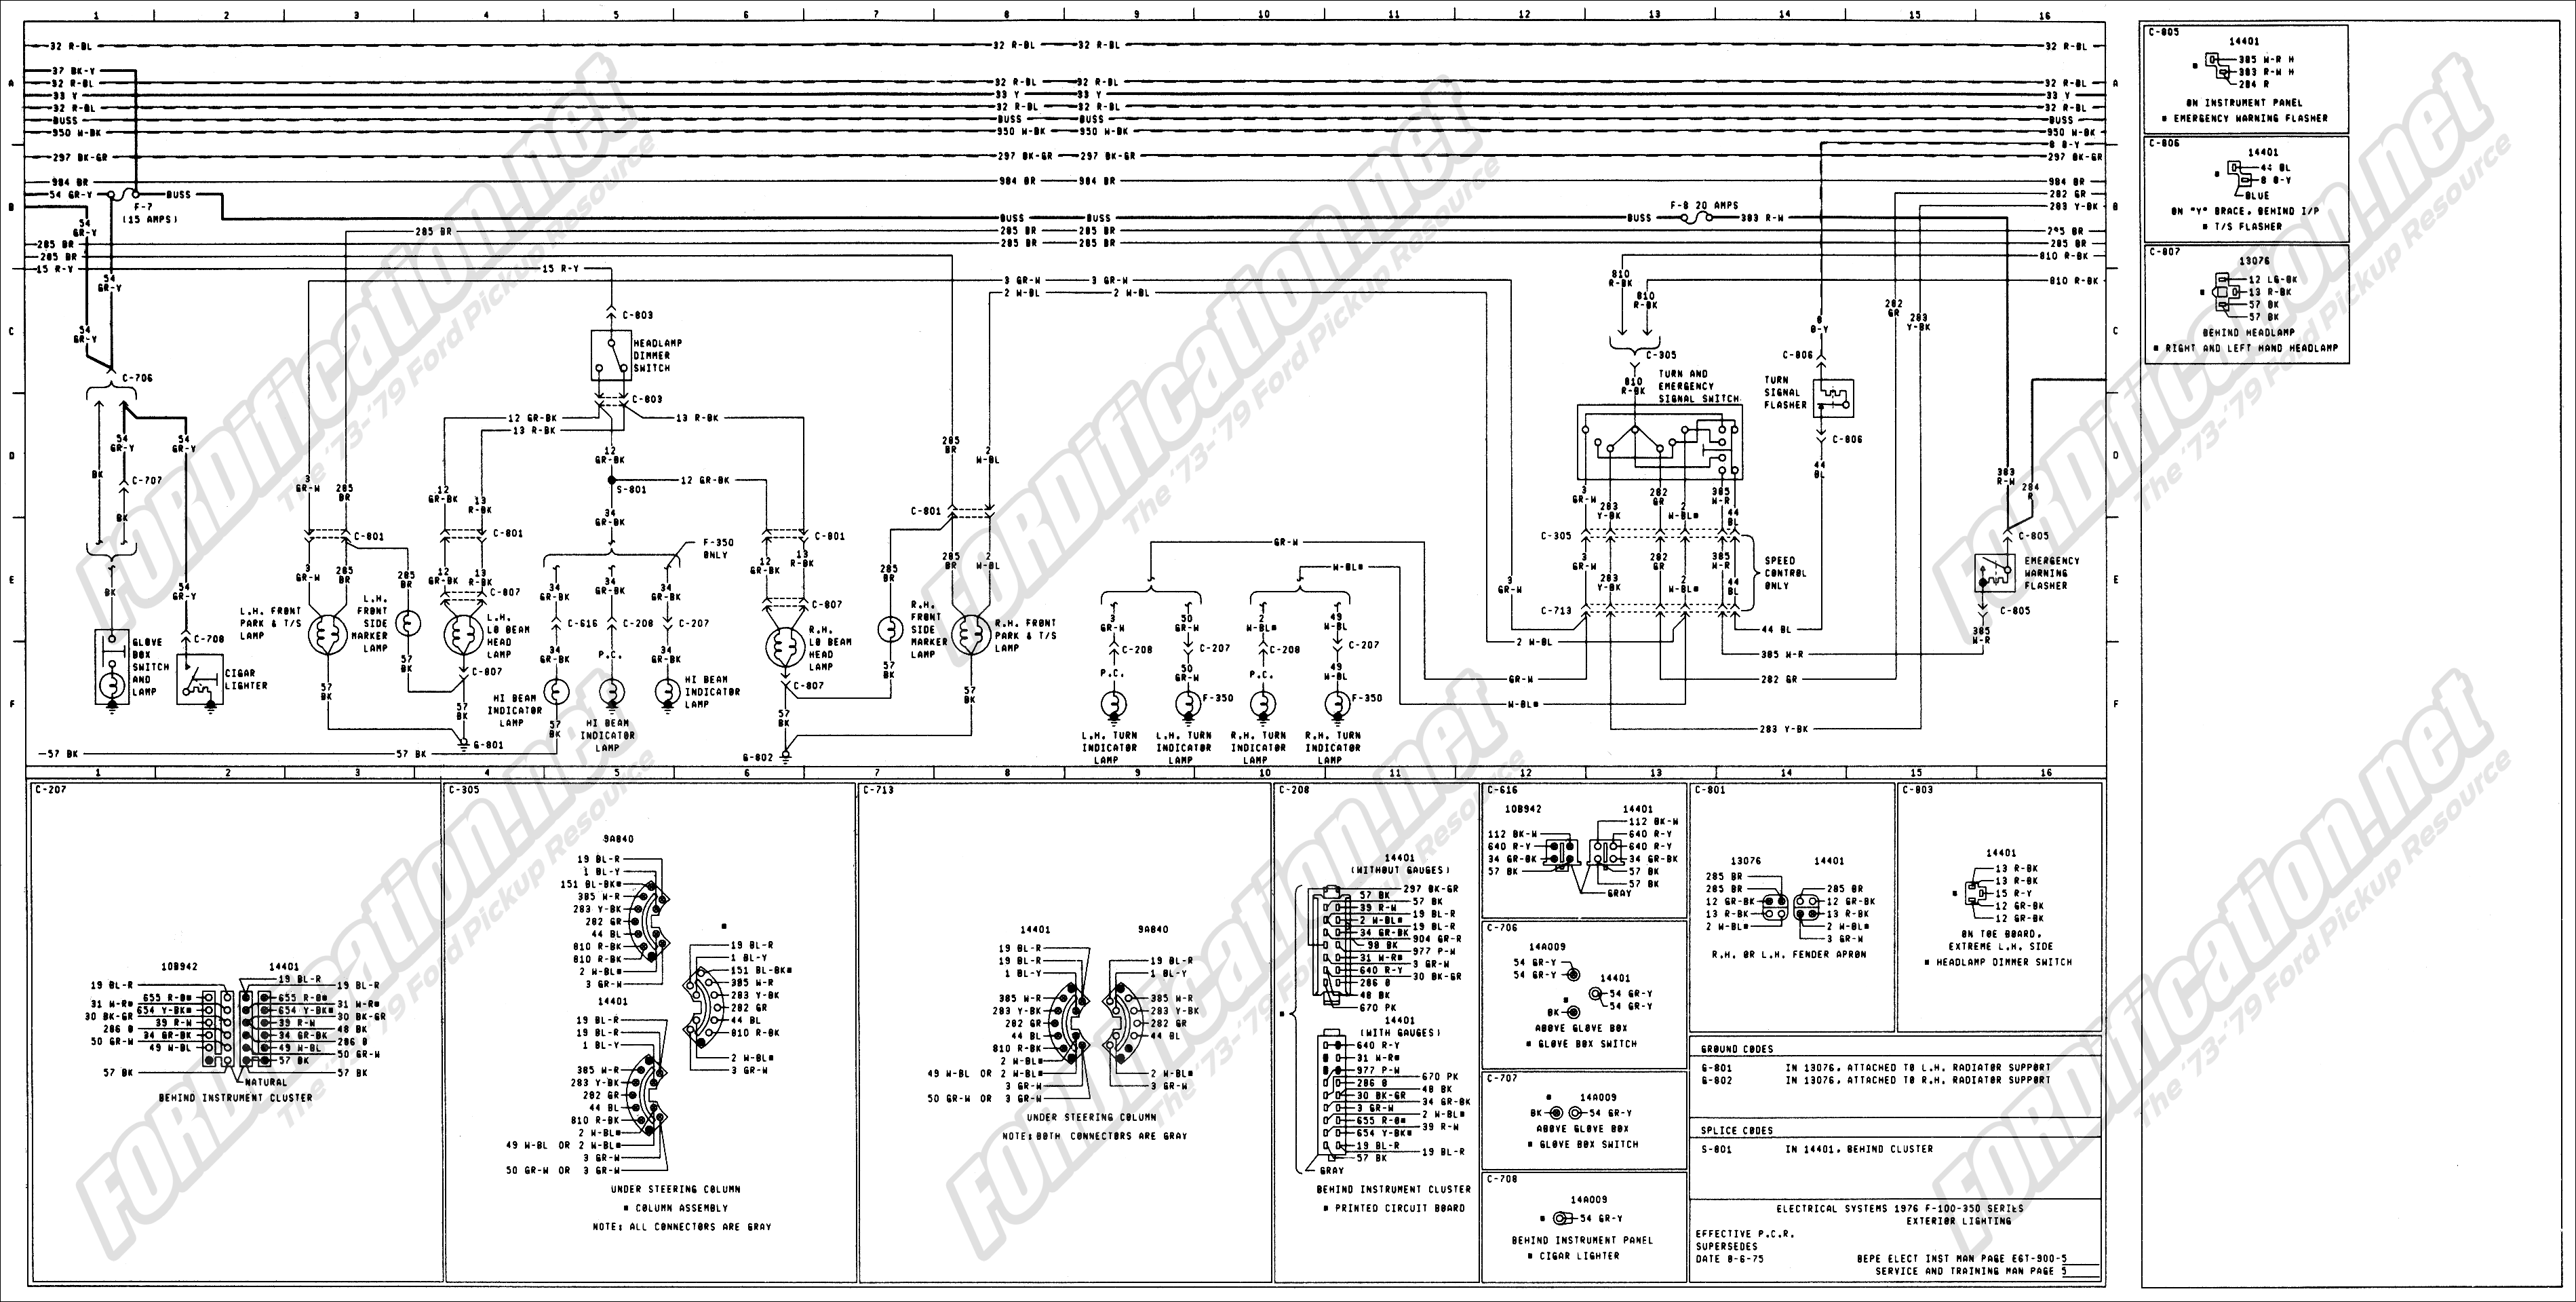 1973 1979 ford truck wiring diagrams schematics fordification net rh fordification net 1979 F250 Wiring Diagram 1973 Ford Alternator Wiring Diagram